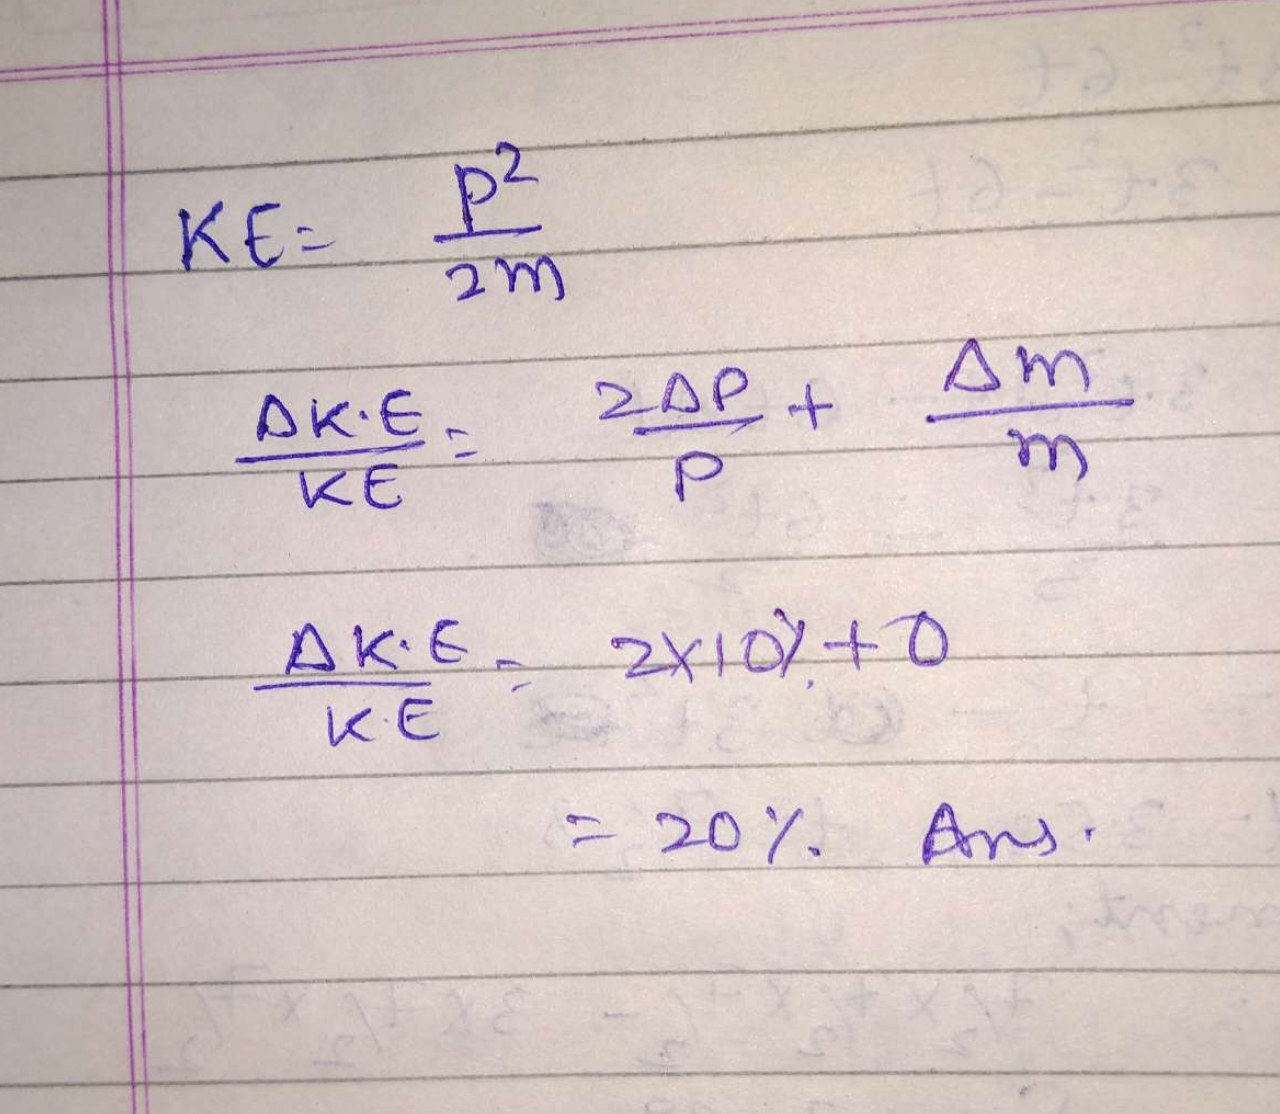 If the error in measurement of momentum of particle is 10% and mass is known exactly, permissible error in the determination of kine energy is